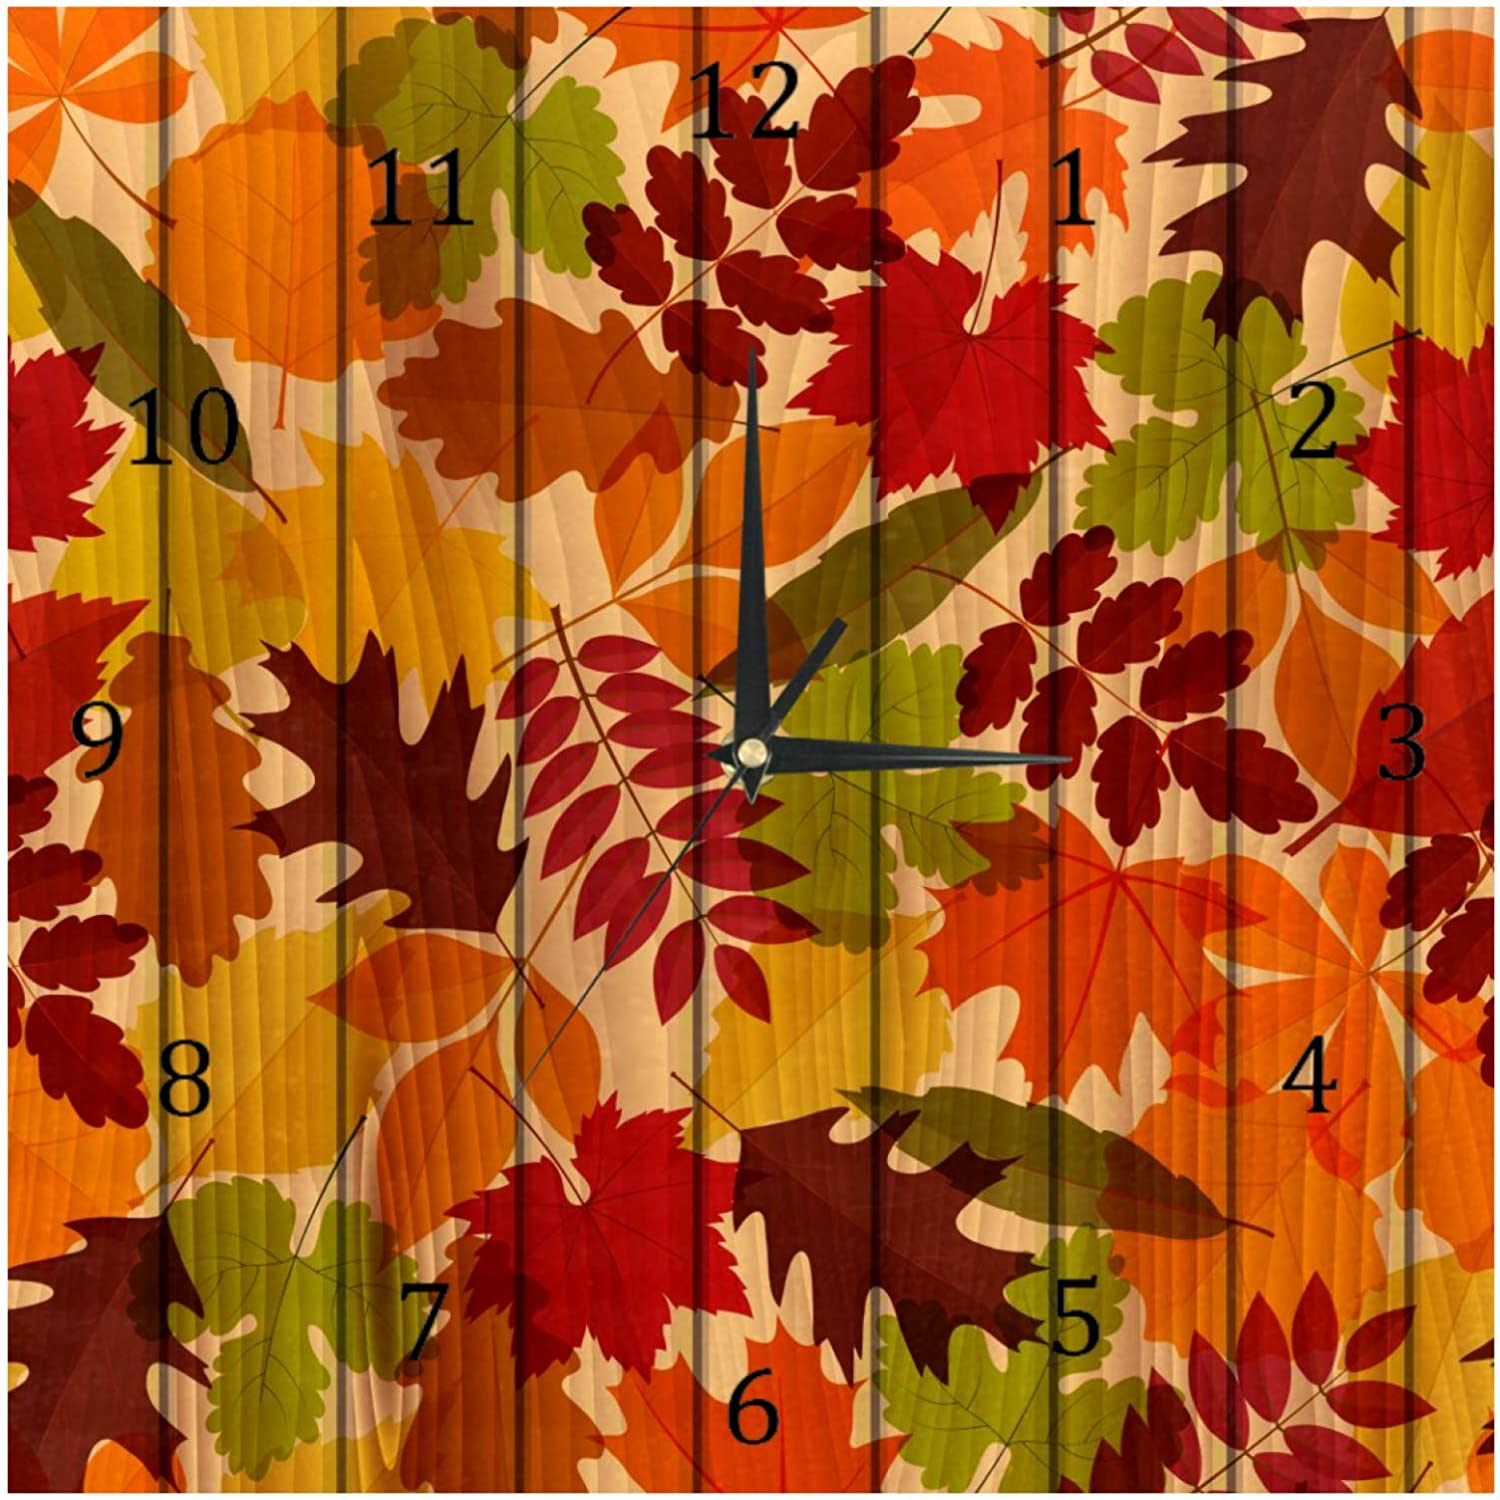 AISSO Wall Clocks Autumn Fall Leaves on Wooden Board Battery Operated Number Clock for Bedroom Living Kitchen Office Home Decor Silent & Non-Ticking